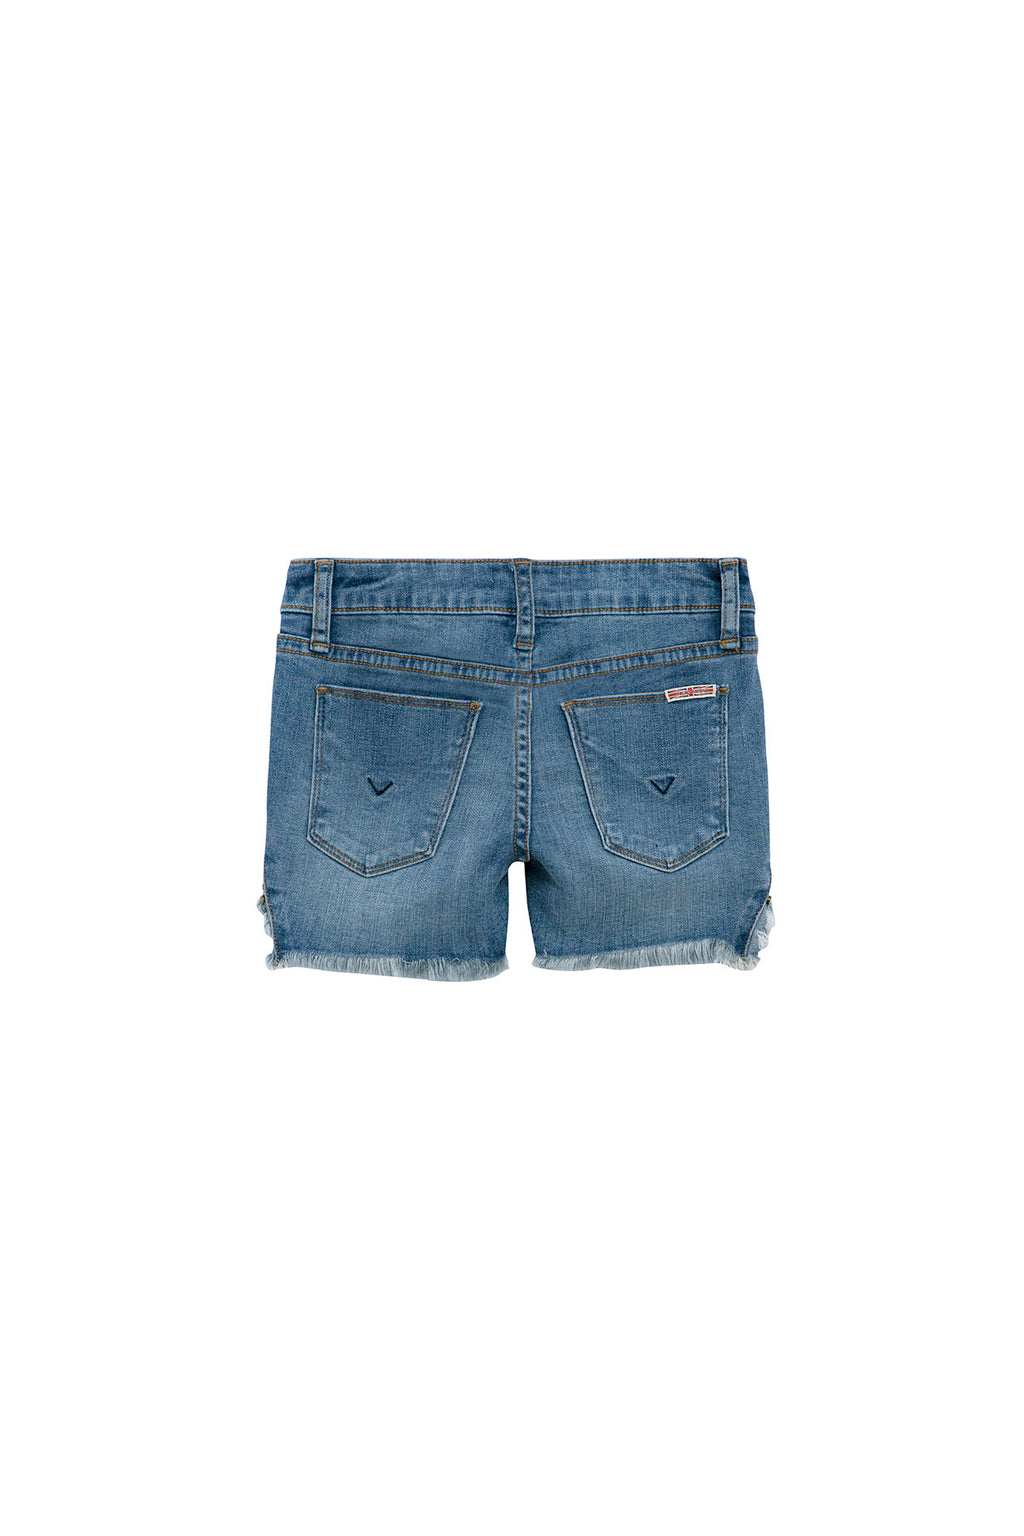 Big Girls Leah Short, Sizes 7-16 - hudsonjeans